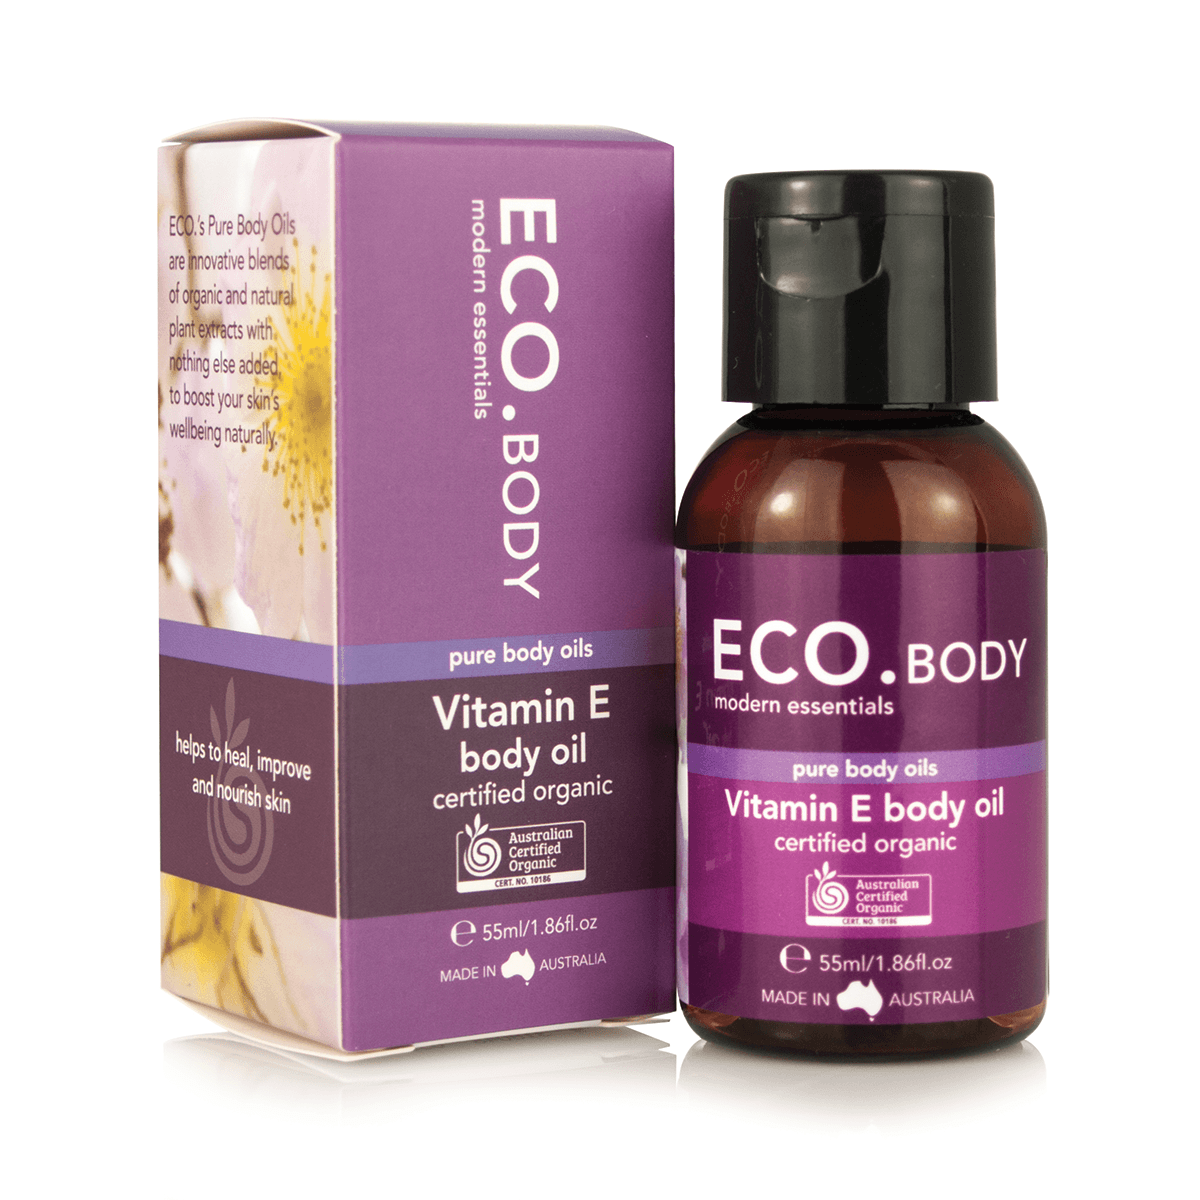 Eco Modern Essentials Certified Organic Vitamin E Pure Body Oil - Switch 2 Pure